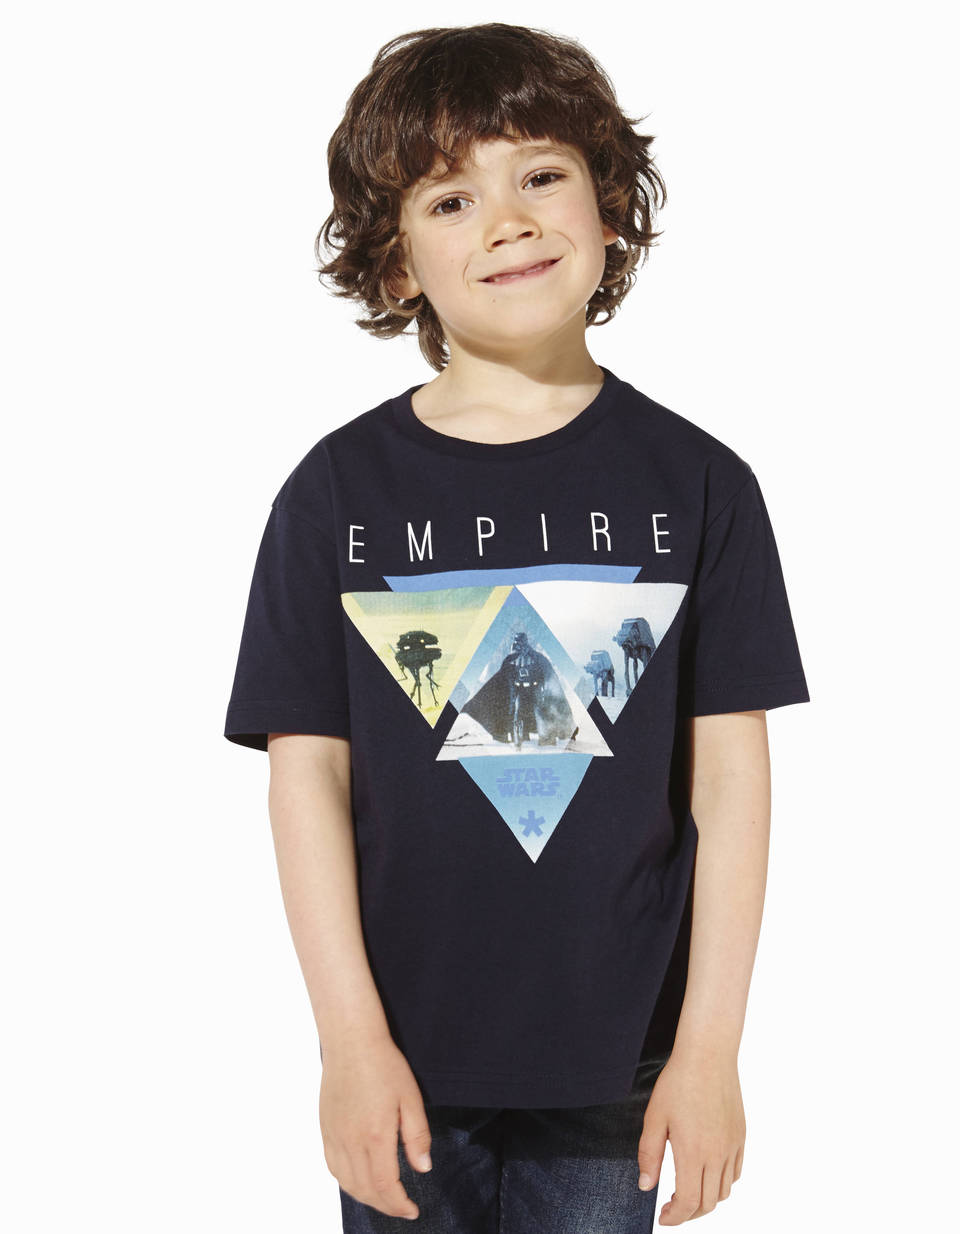 t shirt enfant star wars 100 coton lbeempire2 celio france. Black Bedroom Furniture Sets. Home Design Ideas